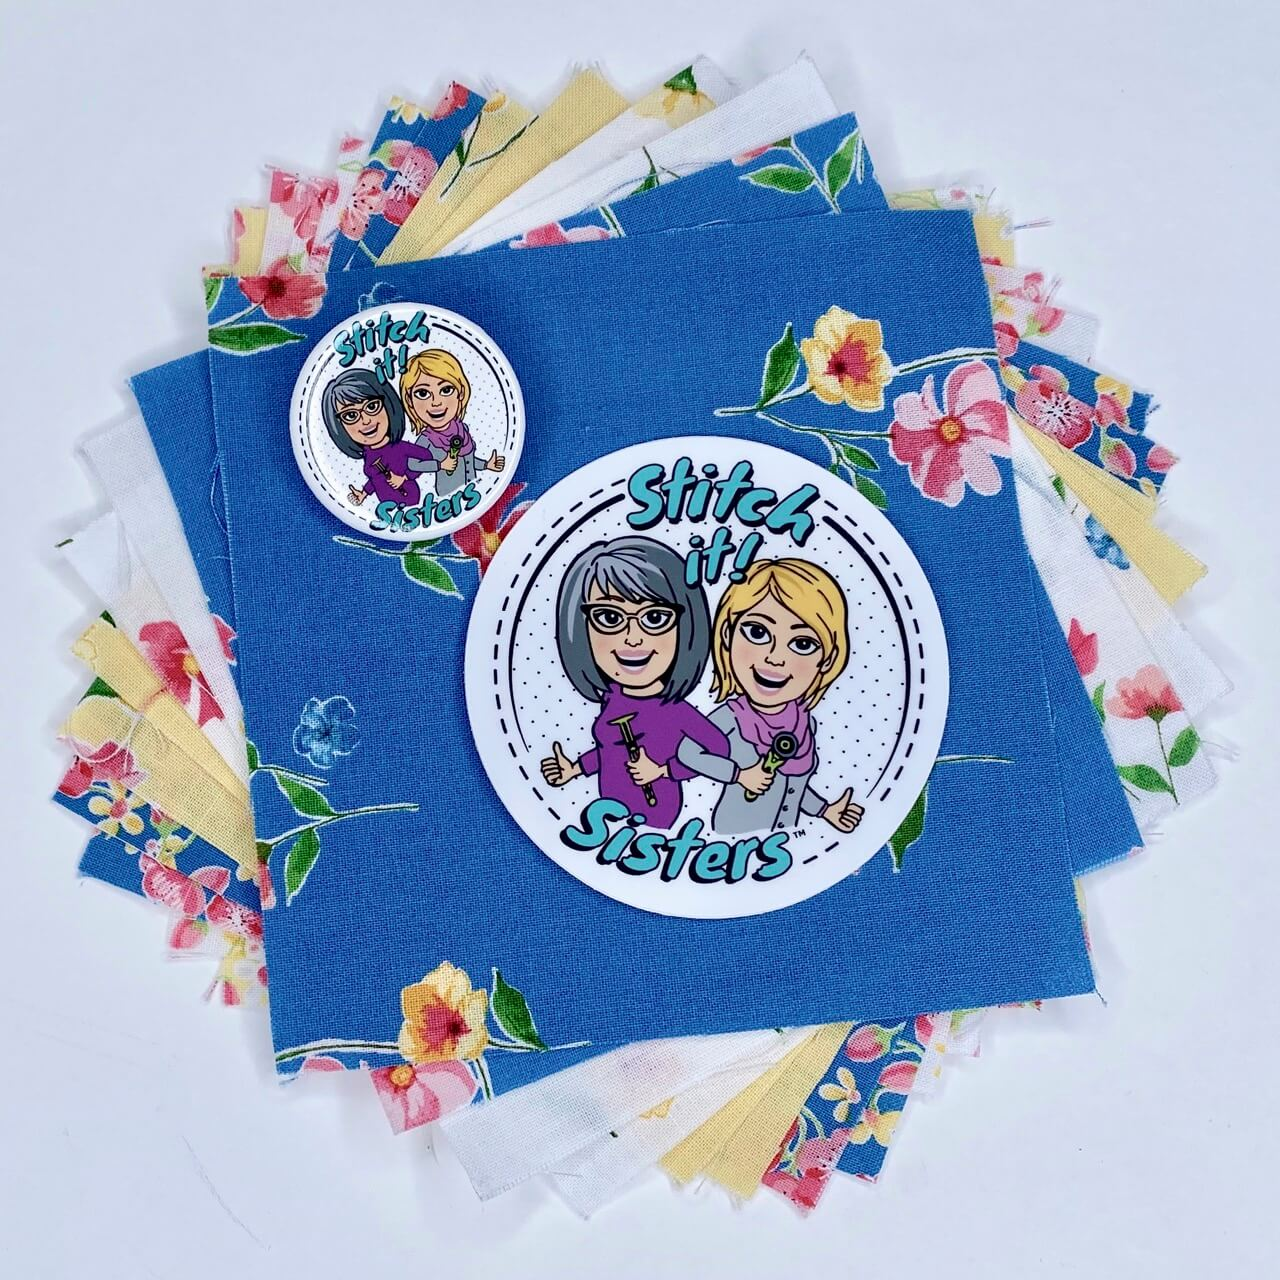 Stitch it Sisters 5 inch Fabric Short Stack with S!S Button and Sticker Giveaway at The Nancy Zieman Productions Blog